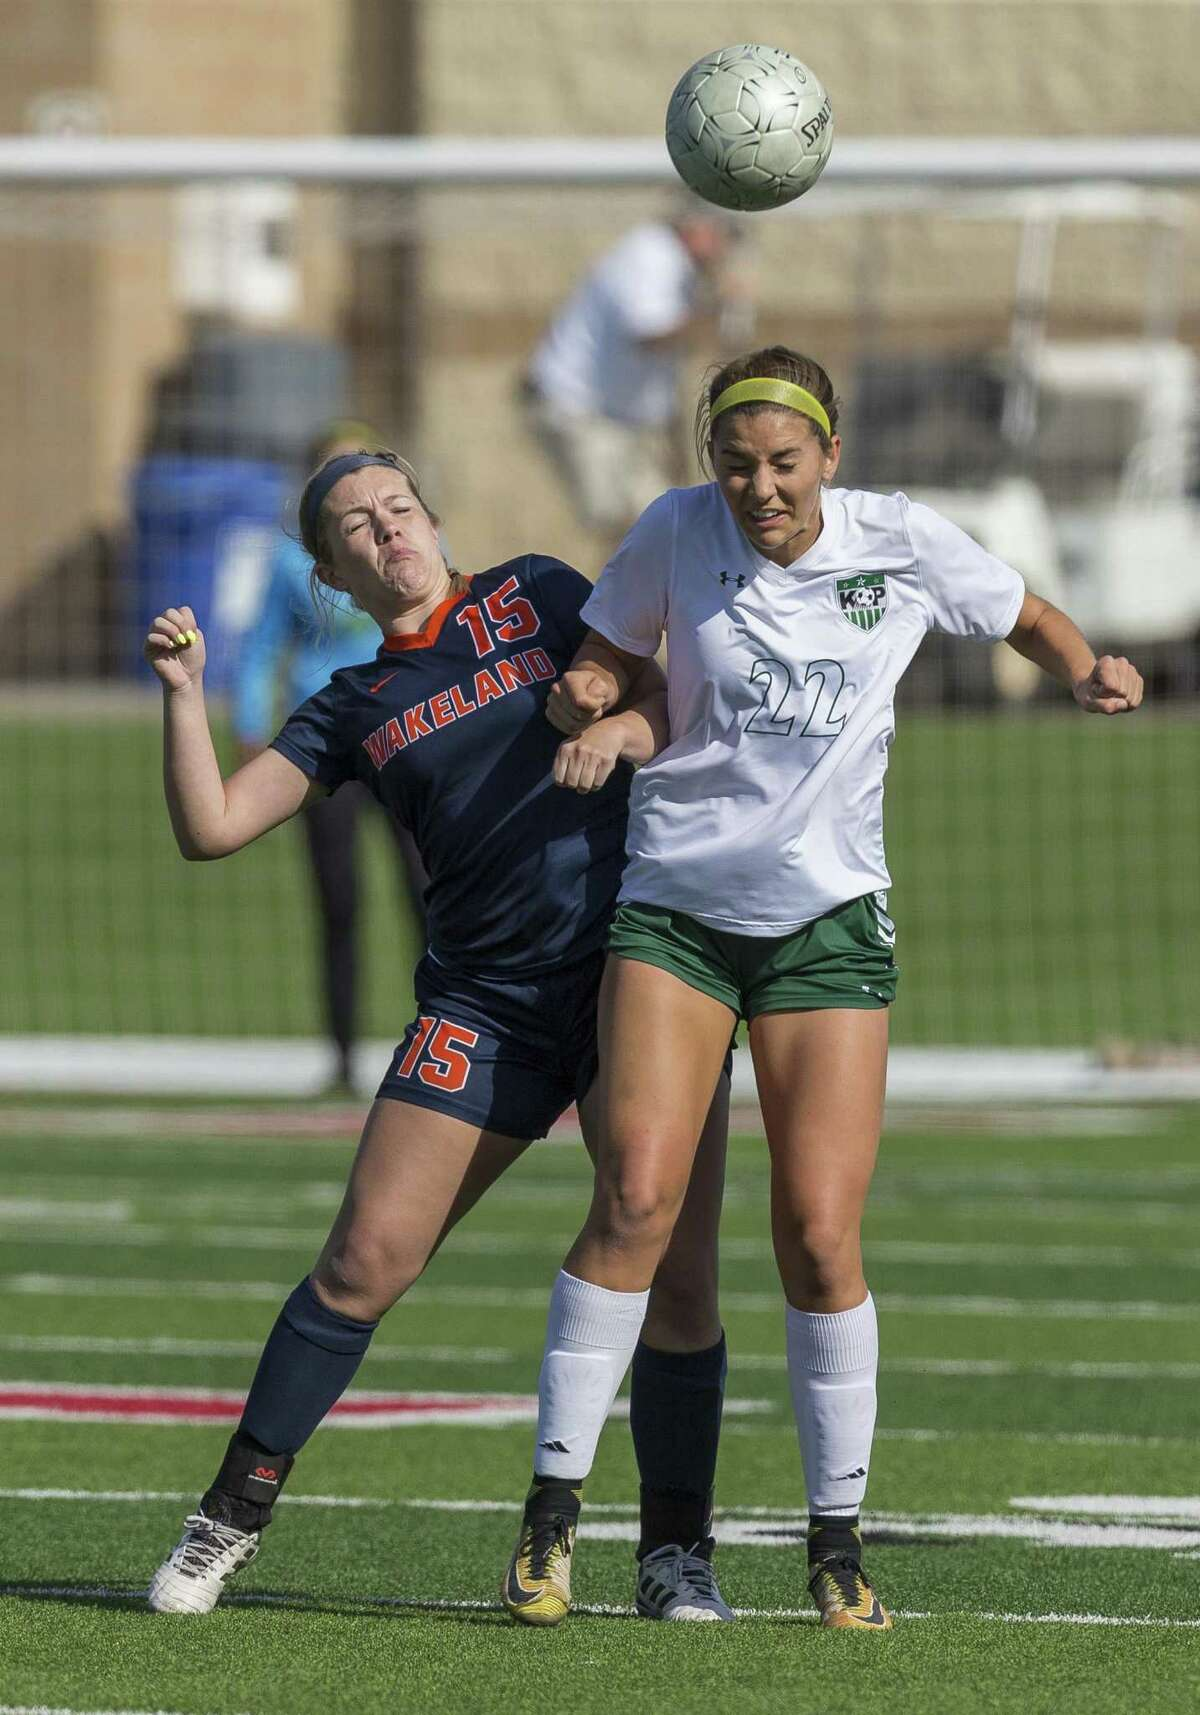 Frisco Wakeland's Avery Amador (15) and Humble Kingwood Park's Bailey Schoener (22) go for the header during the Class 5A girls soccer state semifinal in Georgetown, Thursday, April 19, 2018. (Stephen Spillman)